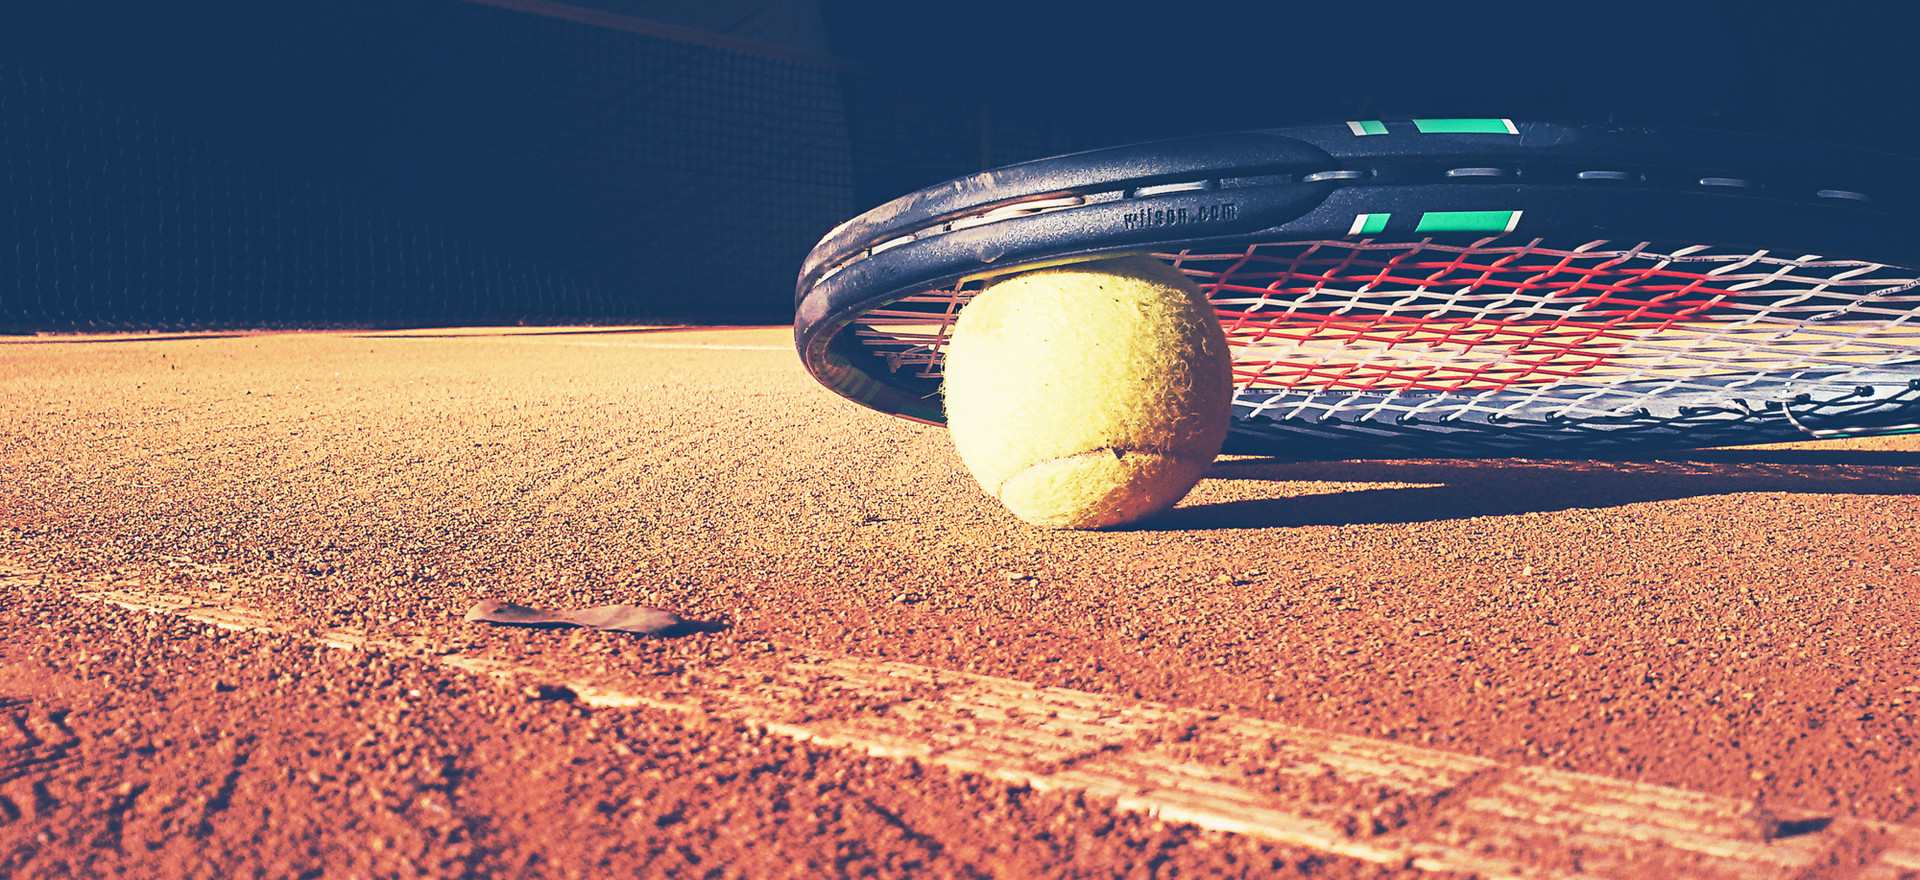 Interesse am Tennissport?